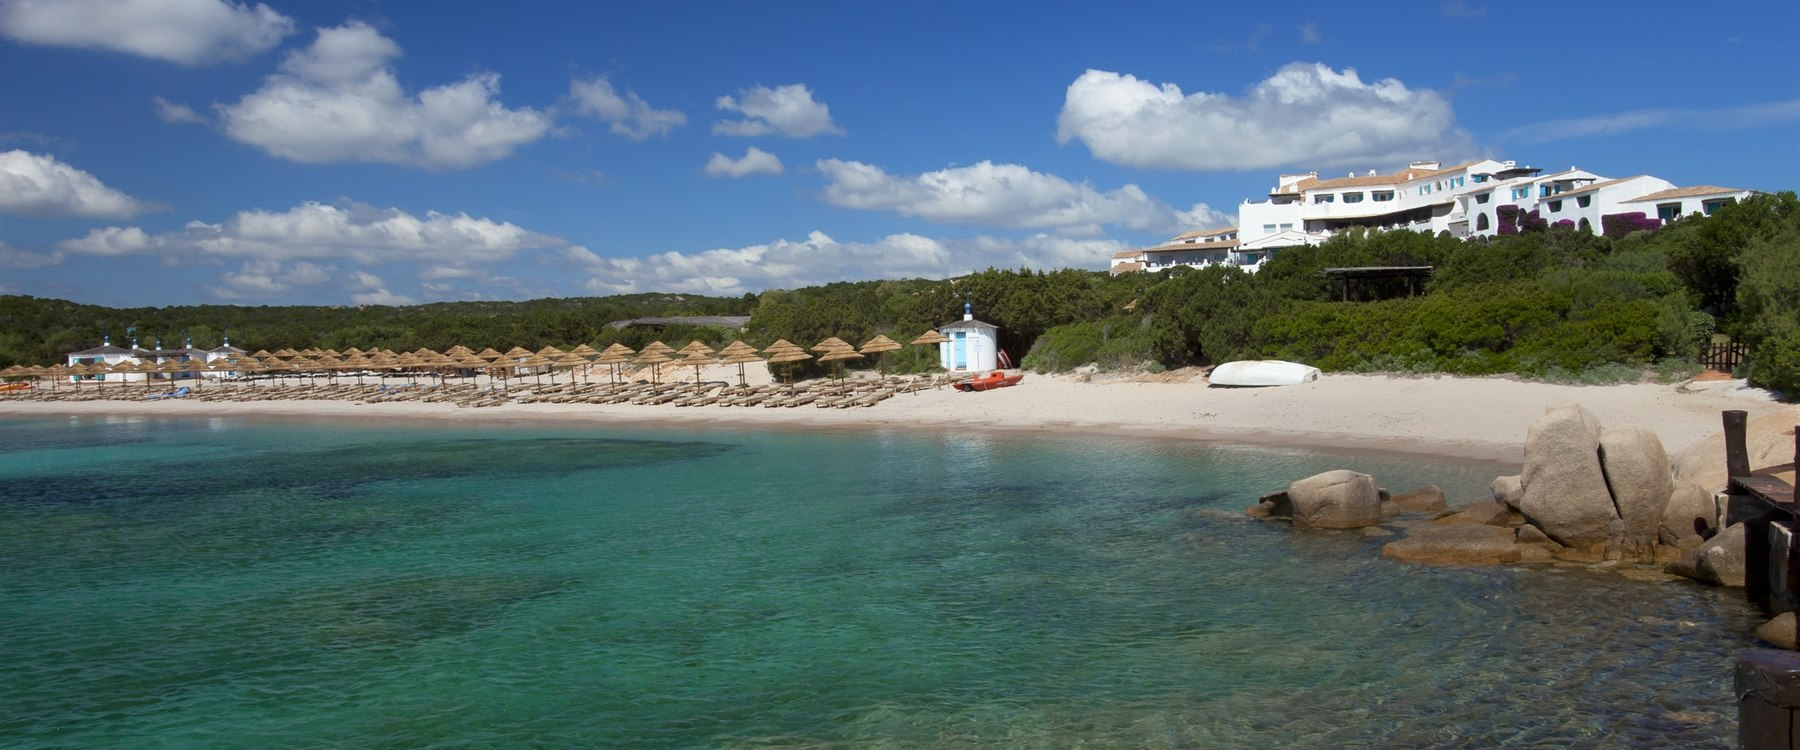 Private beach at Hotel Romazzino, Sardinia